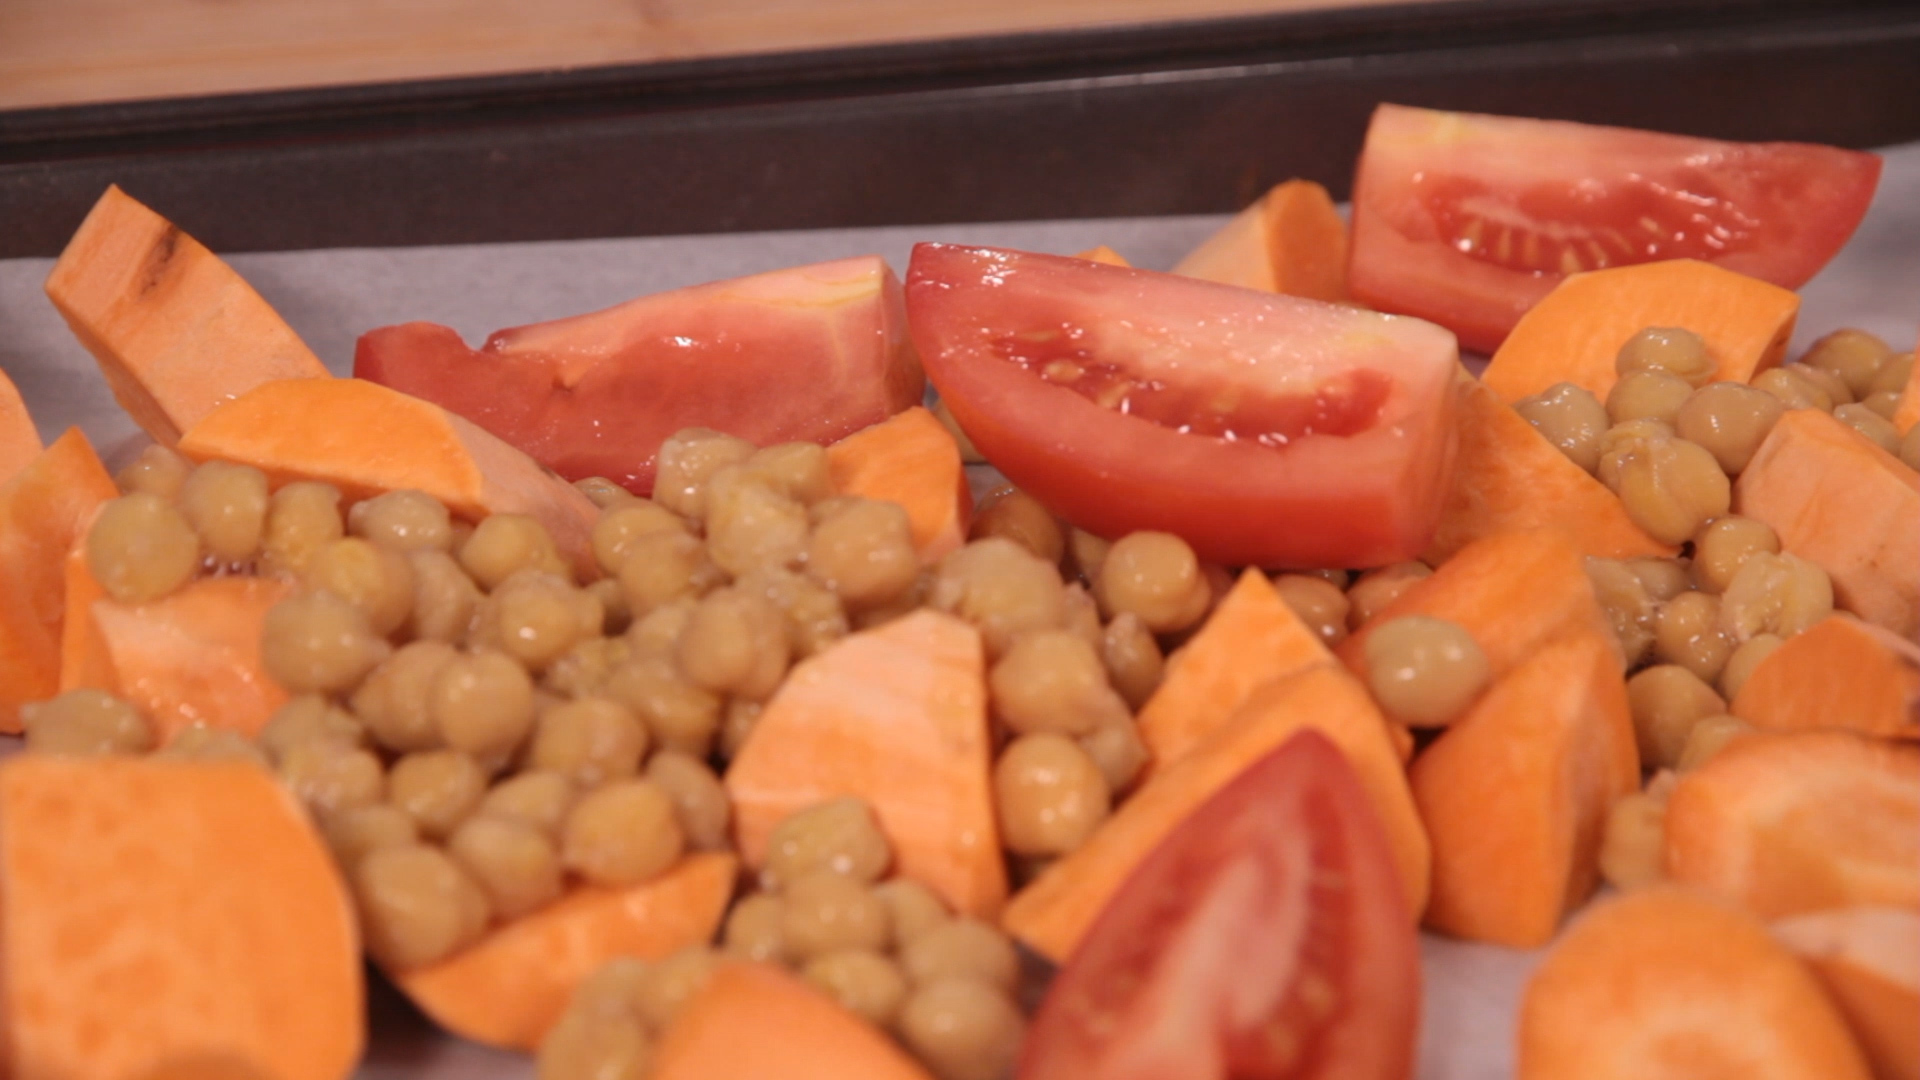 For the Vegetarian Version: I used 2 Sweet Potatoes, 1 Can Rinsed Chickpeas, 2 Large Tomatoes, 10 small Button Mushrooms and 2 Large Carrots. Feel free to explore with any vegetable you want!